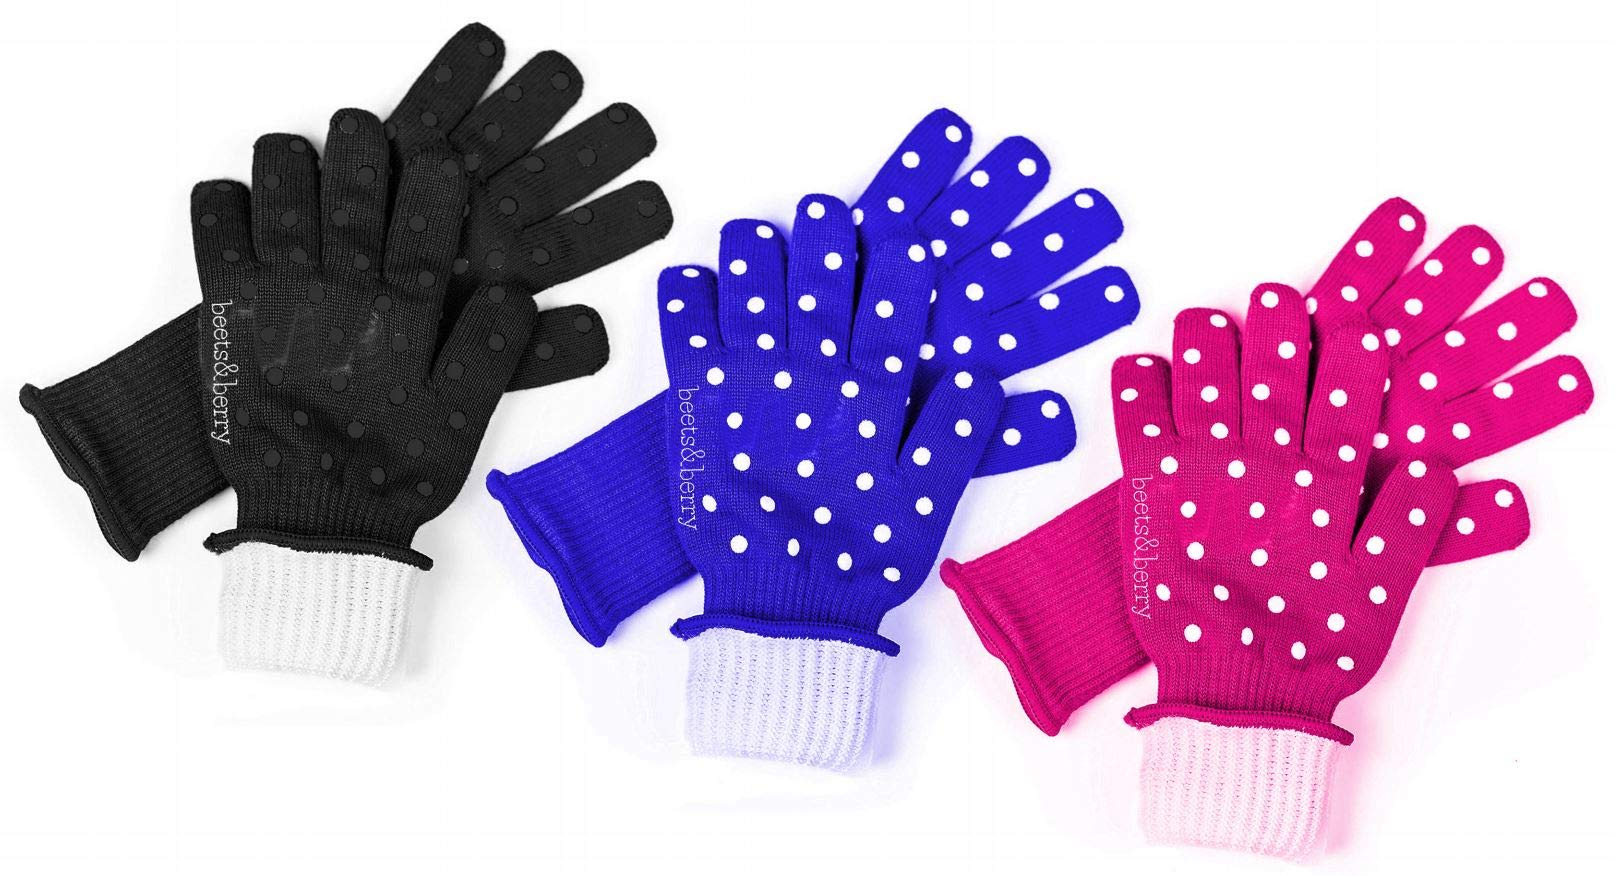 Beets & Berry Oven Gloves Heat Resistant Baking Gloves 1 Pair Oven Mitts Cut Resistant Cooking Gloves with Extra Long Sleeve & Silicone Non-Slip (Black, Blue & Pink) by Beets & Berry